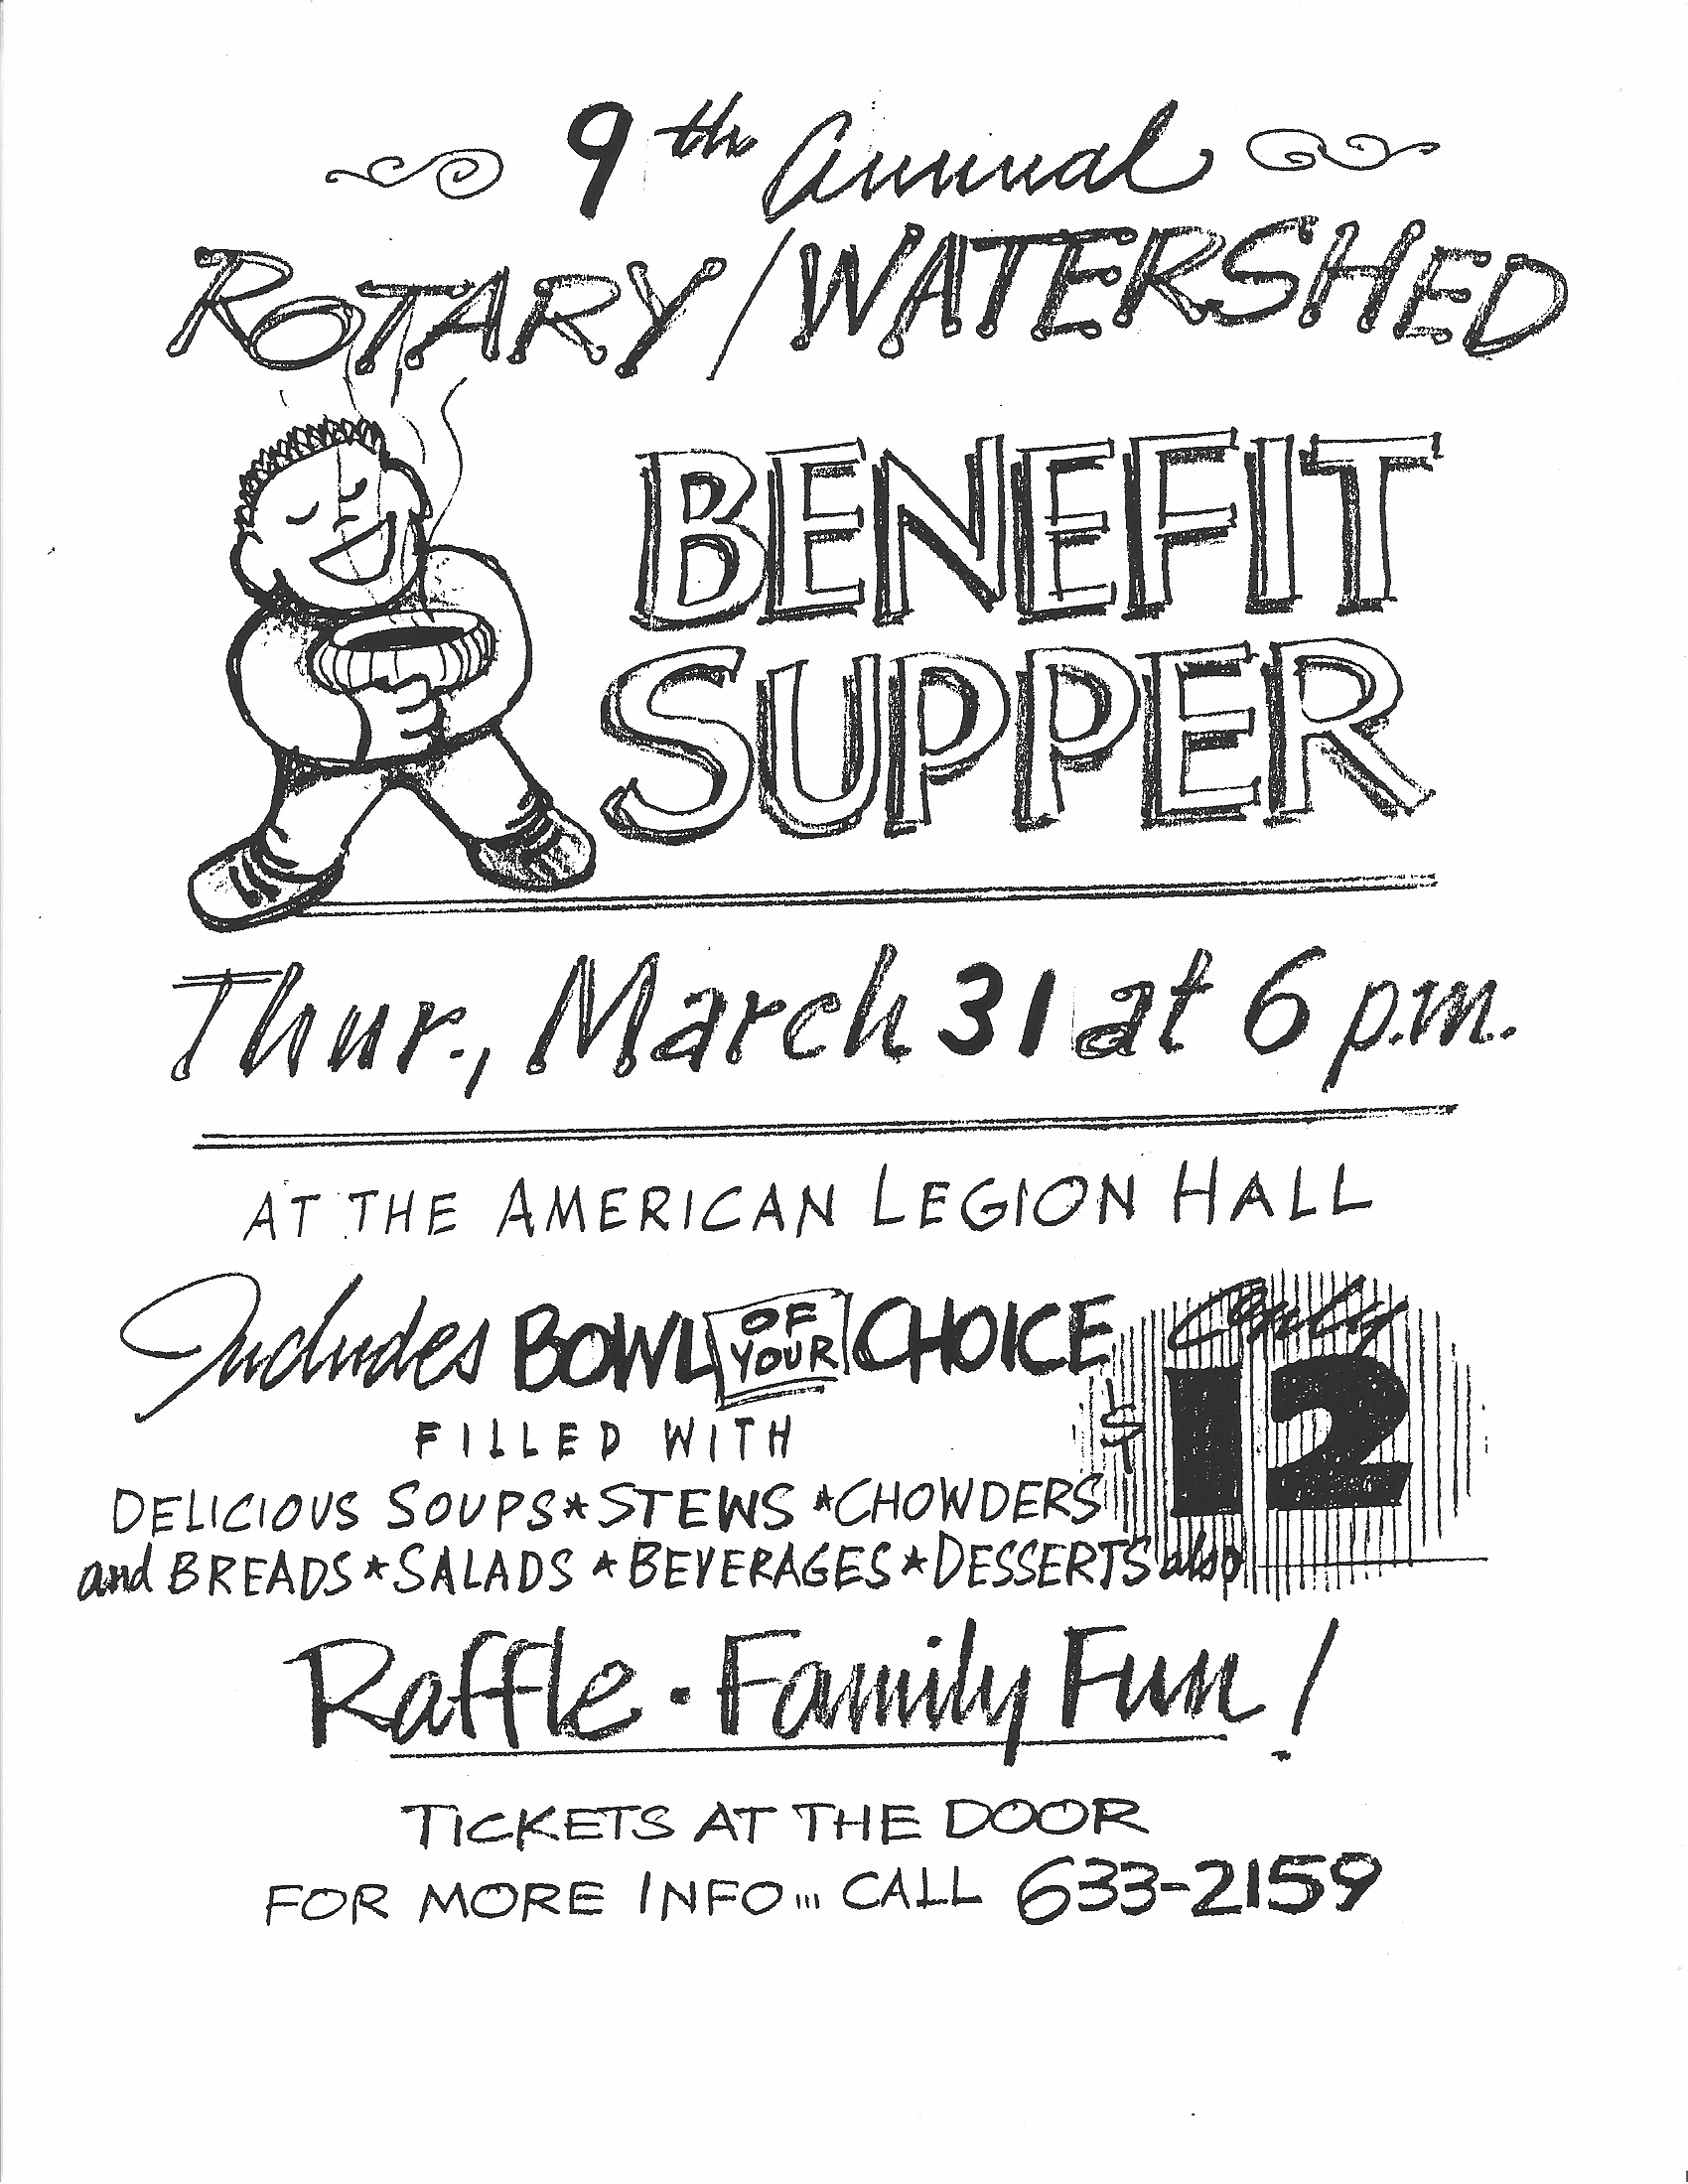 The 2005 Soup Bowl Supper poster, inviting people to the 9th annual supper.